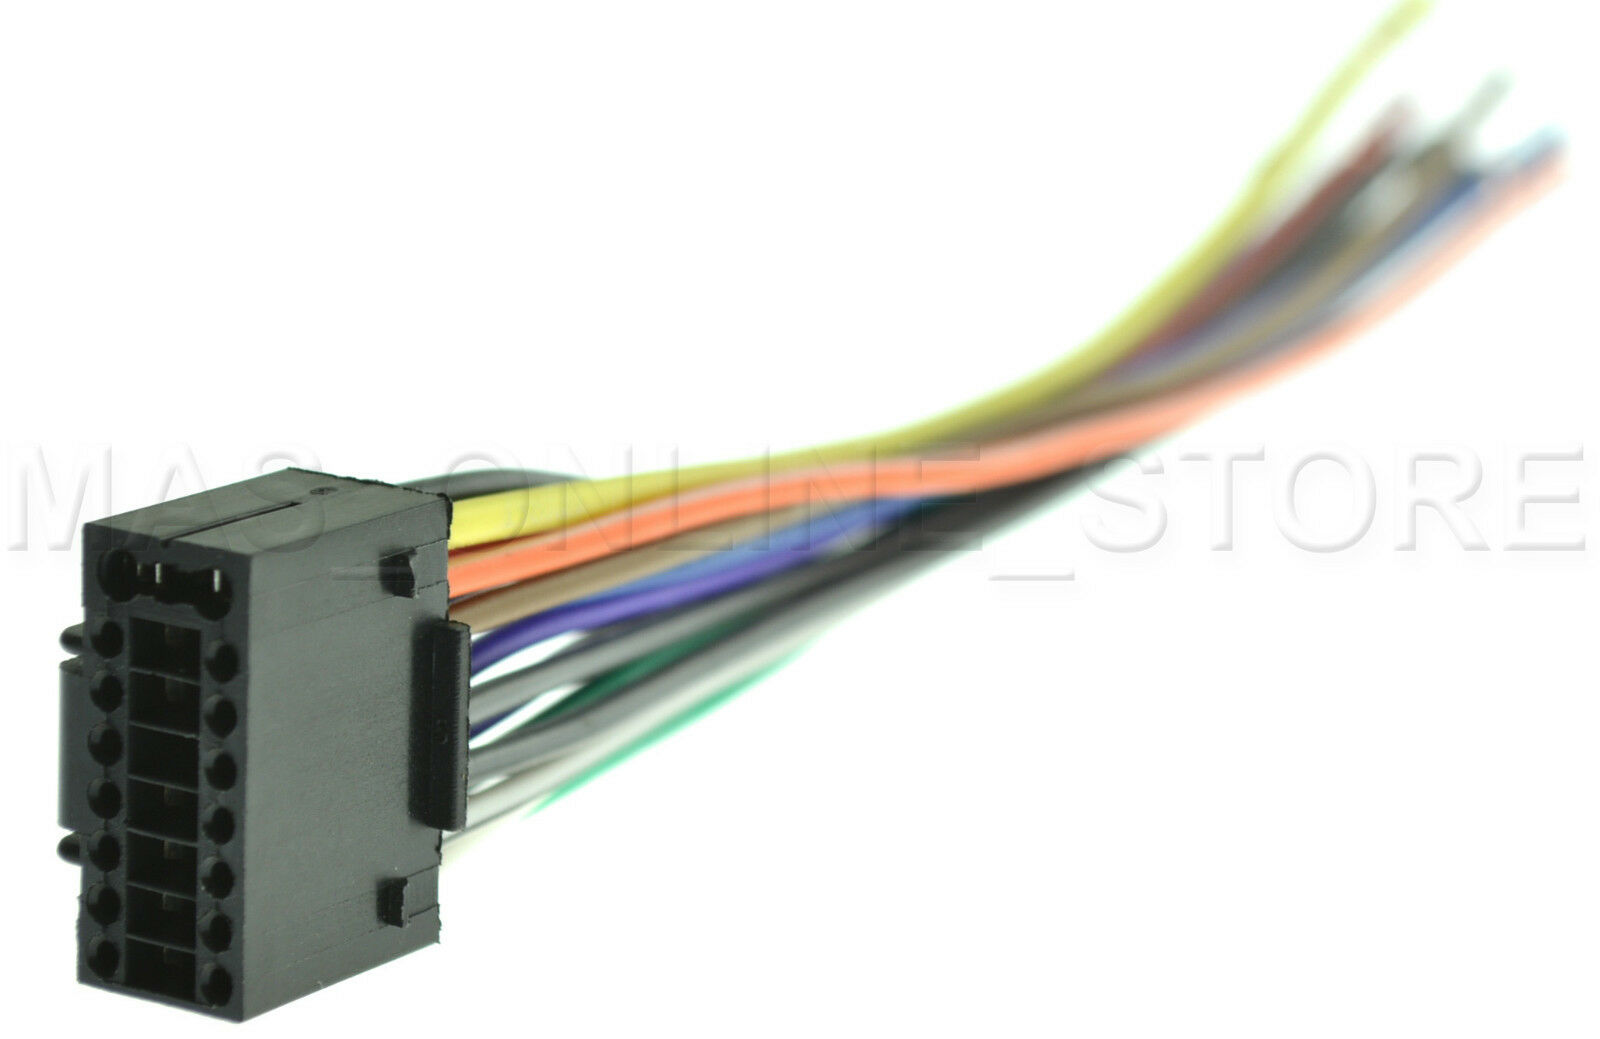 Wiring Harness Adapter Ford To Jvc Library Norton Secured Powered By Verisign Wire For